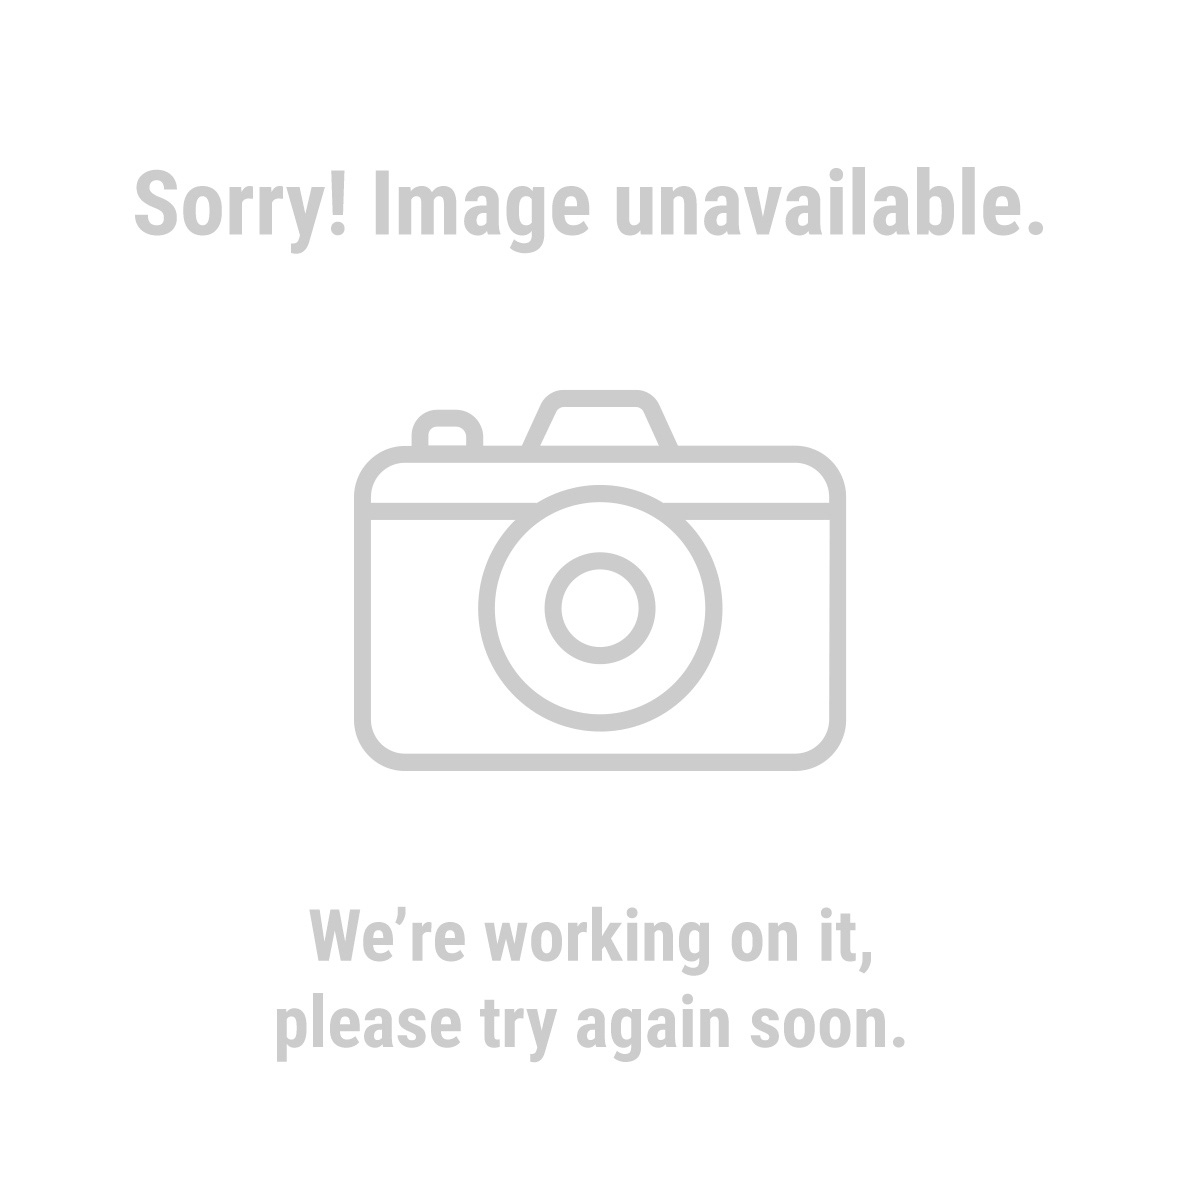 U.S. General 93547 Fuel Pump and Vacuum Tester